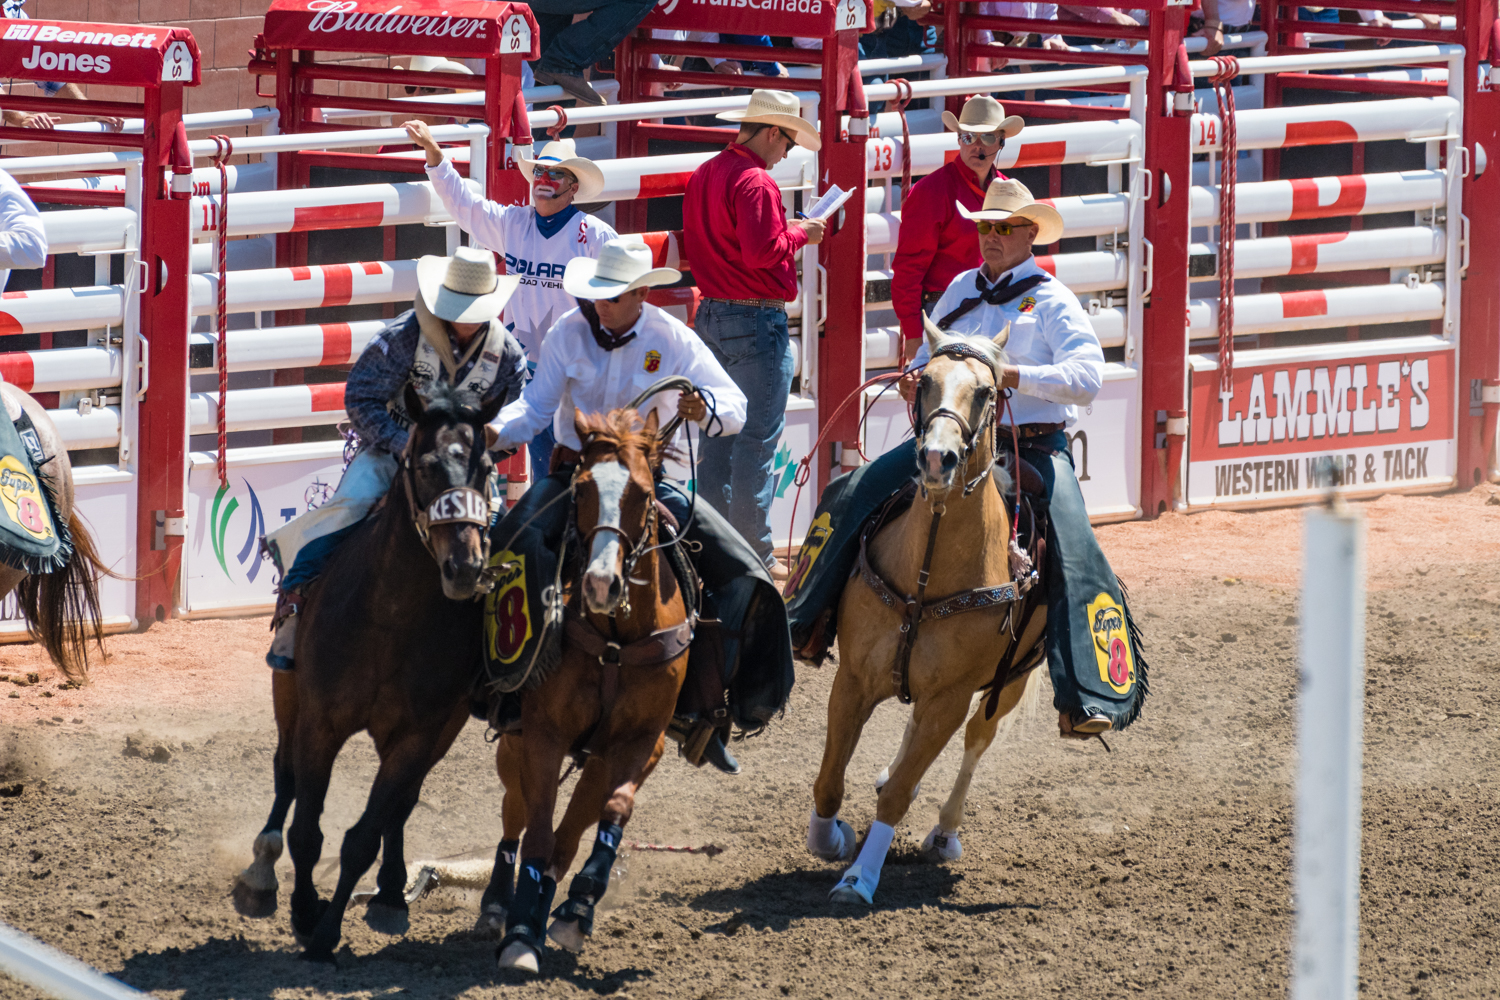 """The rodeos weren't a """"stay on a long as possible"""" event. Most rodeos only lasted around 7 seconds before the klaxon was sounded. If the cowboy was still on the horse at the end other mounted cowboys would surround the horse and regain control."""